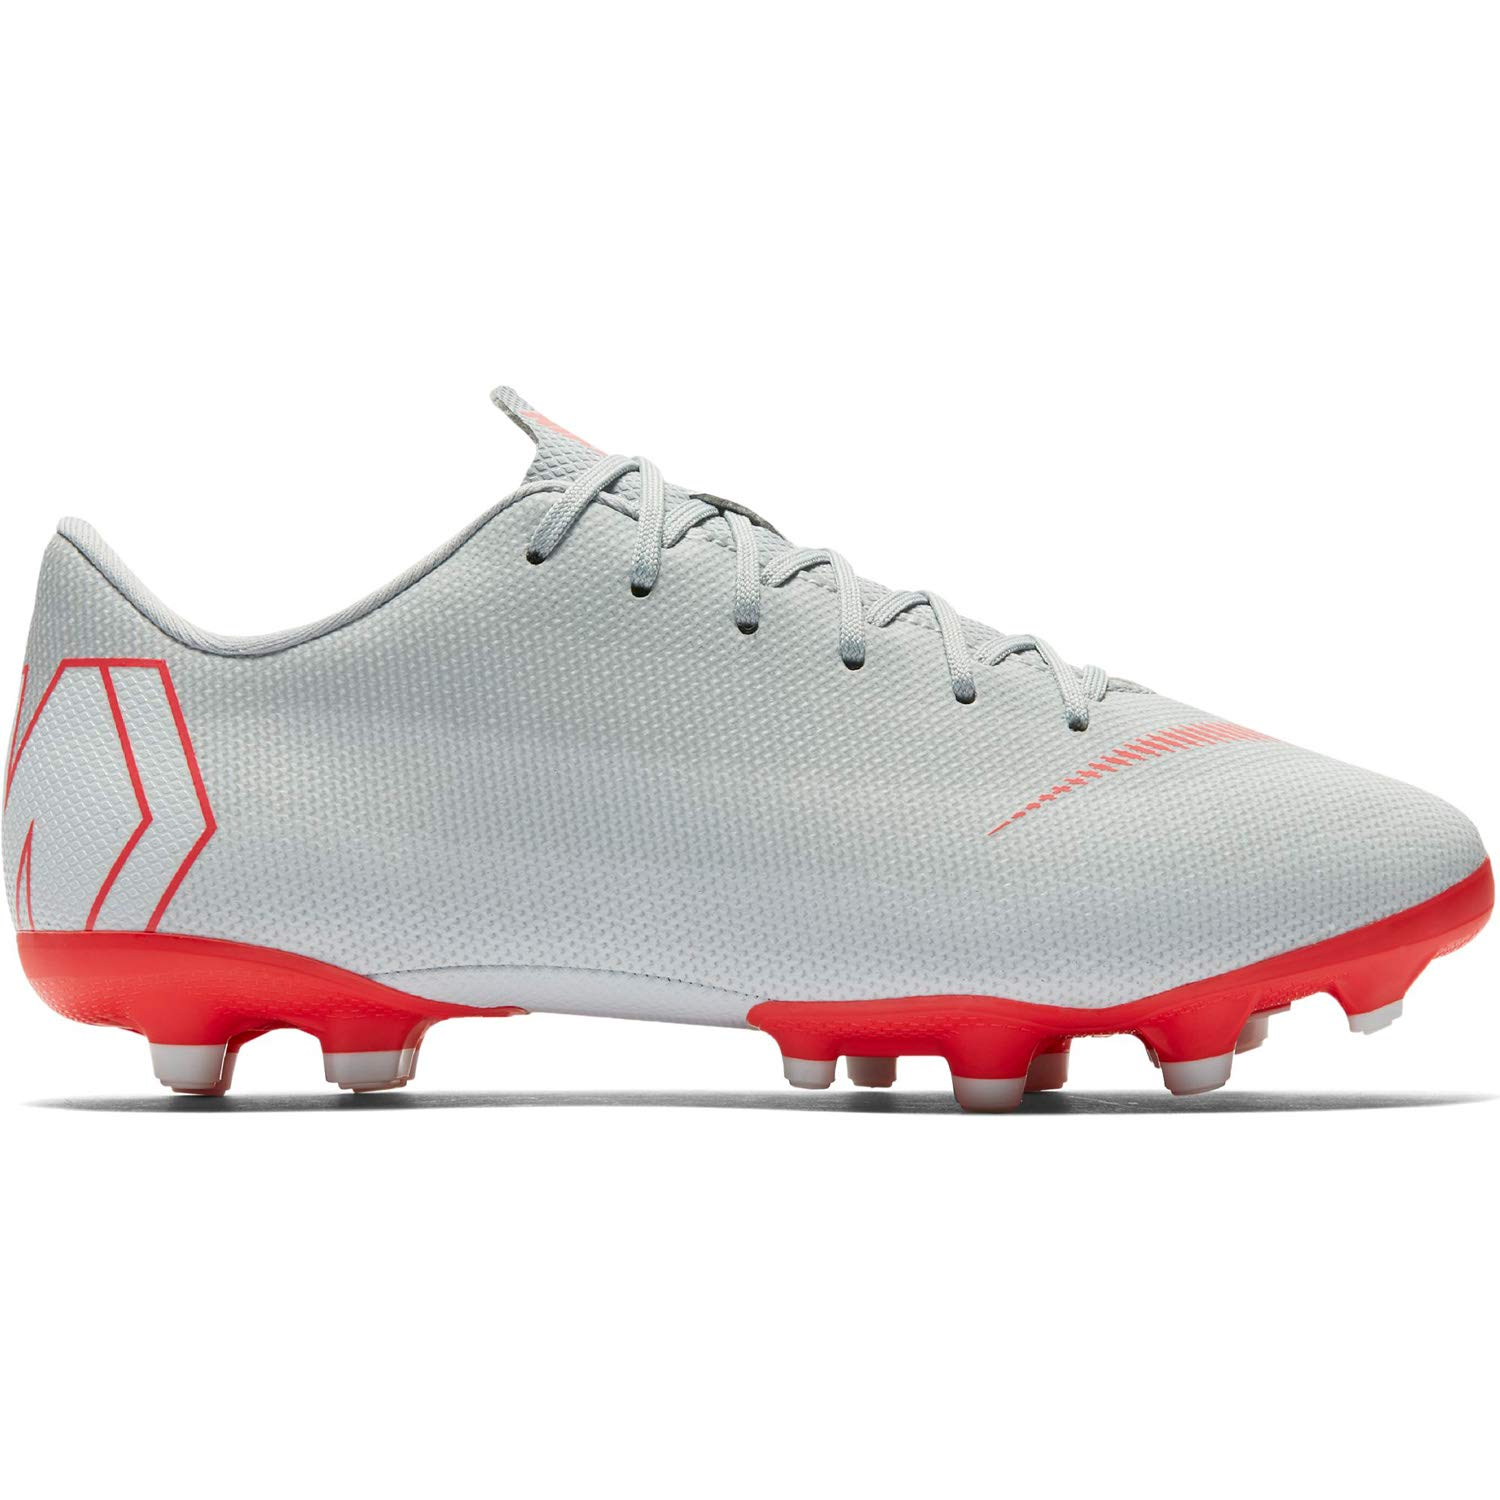 Nike Unisex Kids' Mercurial Vapor XII Academy Mg Footbal Shoes